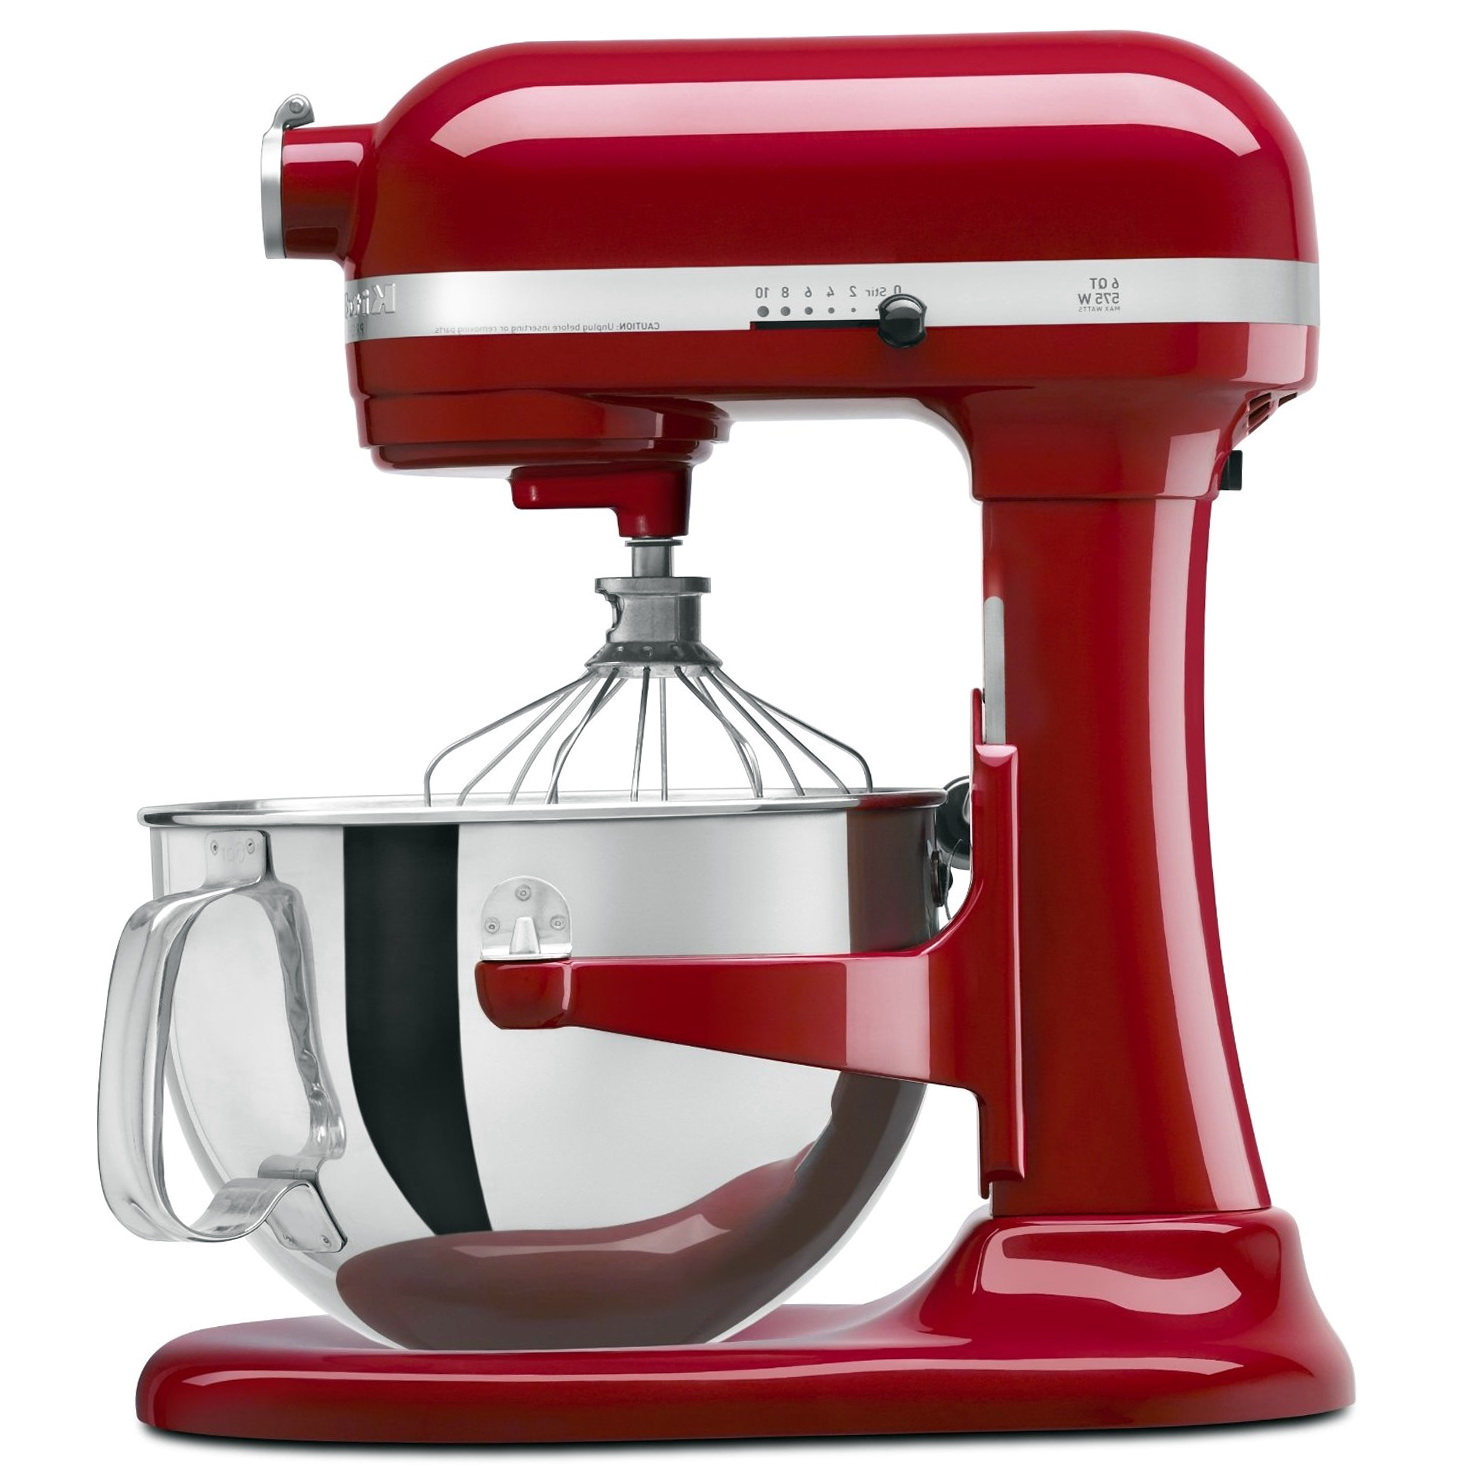 Kitchenaid Mixers On Sale Kitchen 35573 Home Design Ideas